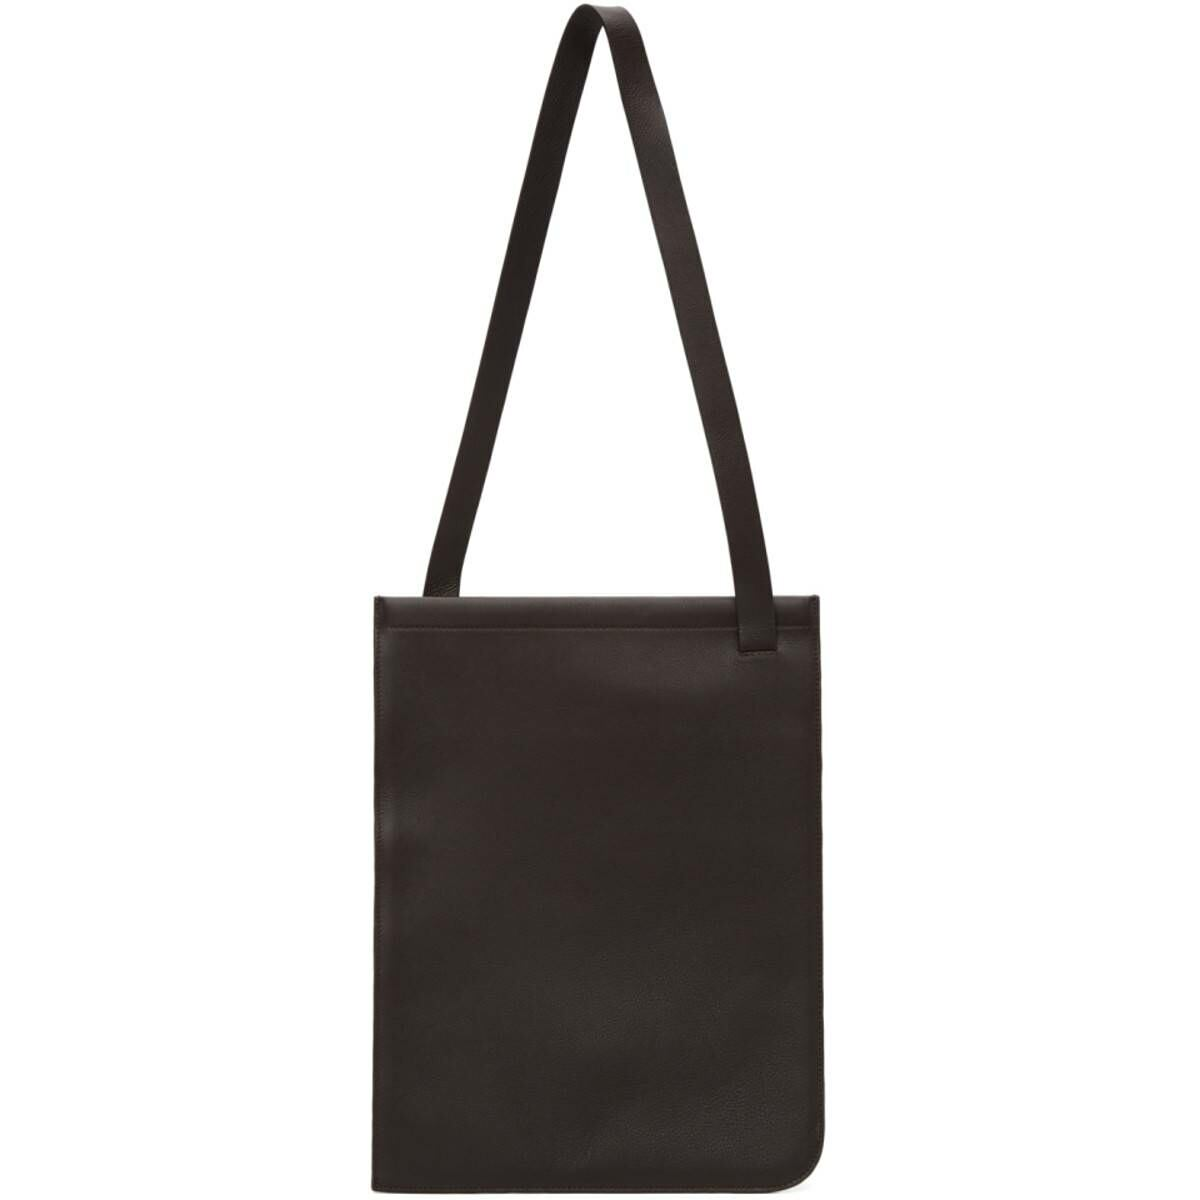 Lemaire Brown Nappa Leather Tote Ssense USA MEN Men ACCESSORIES Mens BAGS